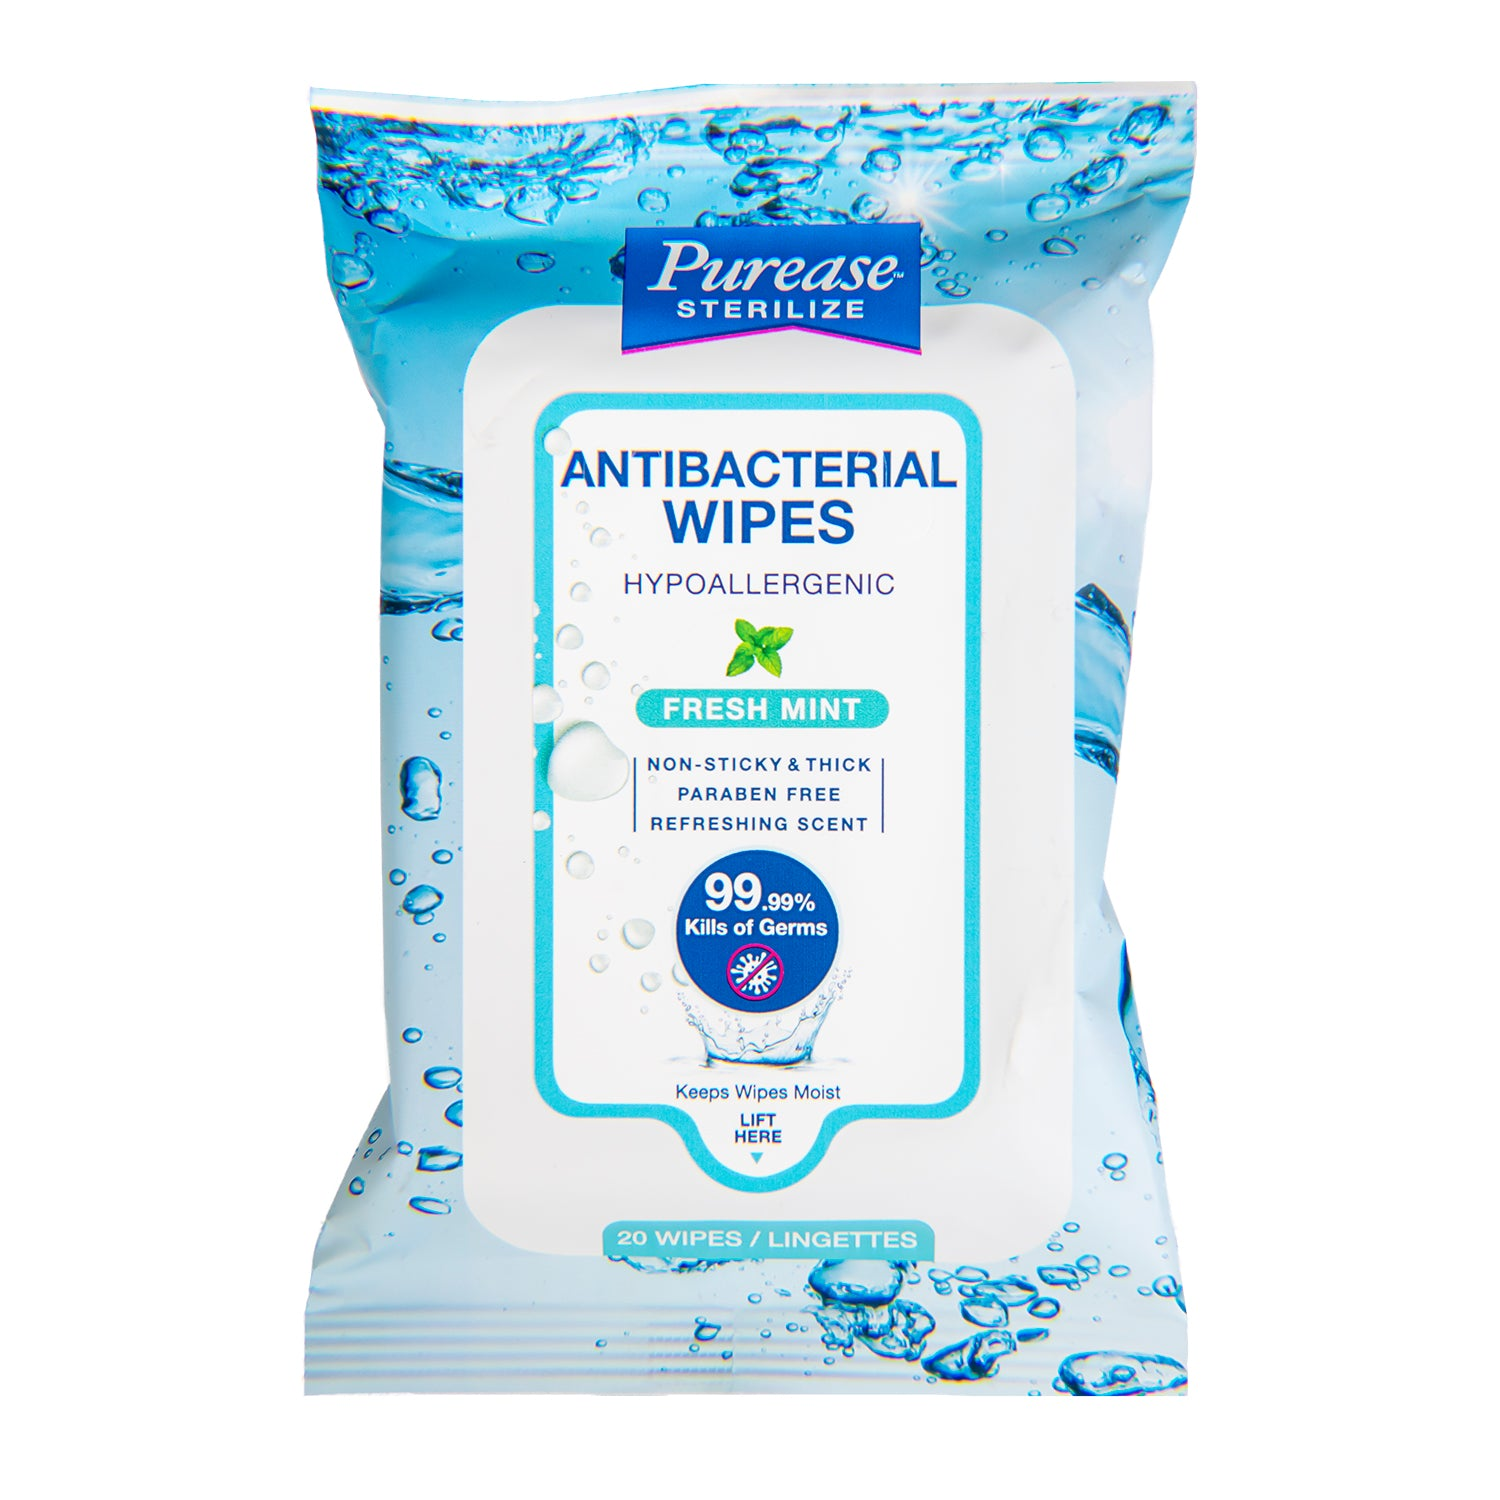 Purease Sterilize Antibacteral Wipes Hypoallergenic